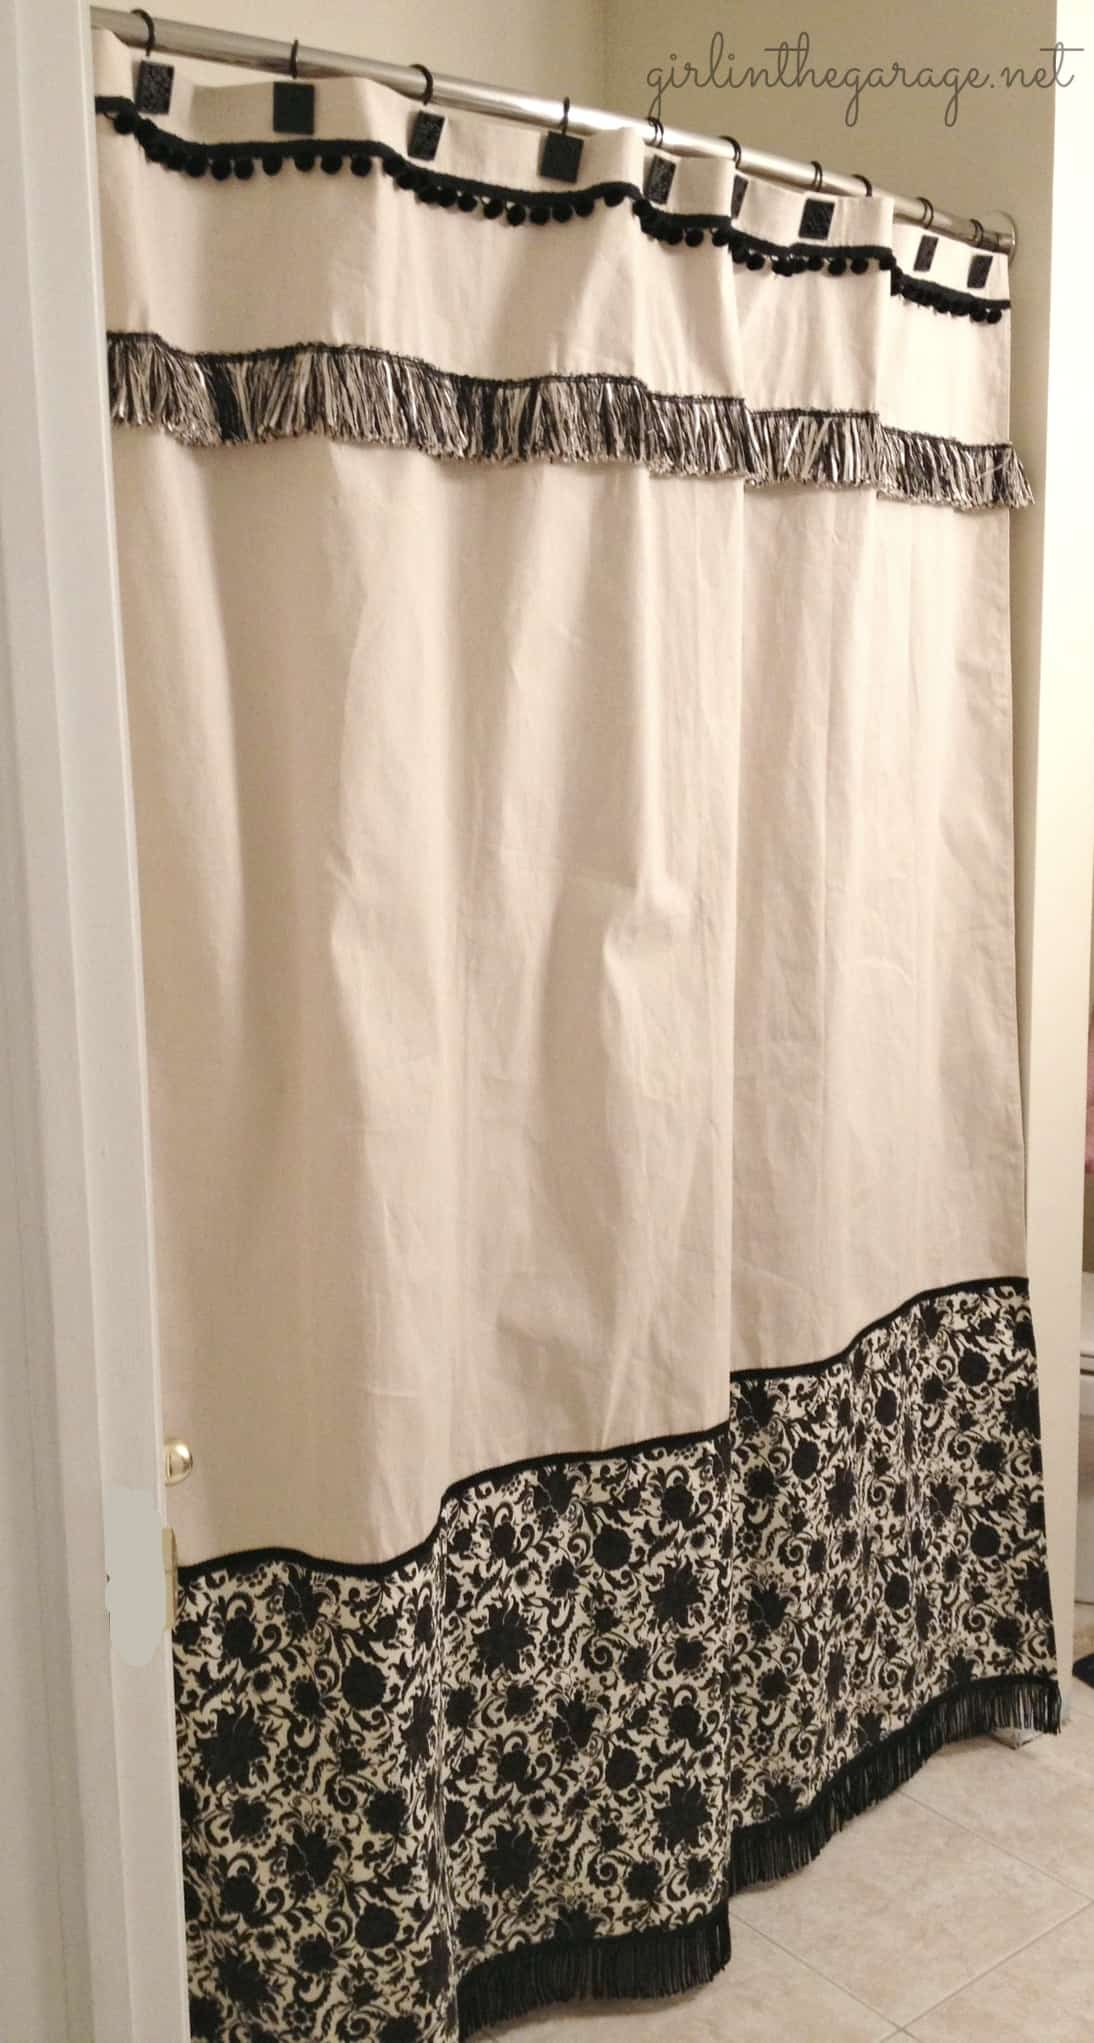 Custom trimmed shower curtain